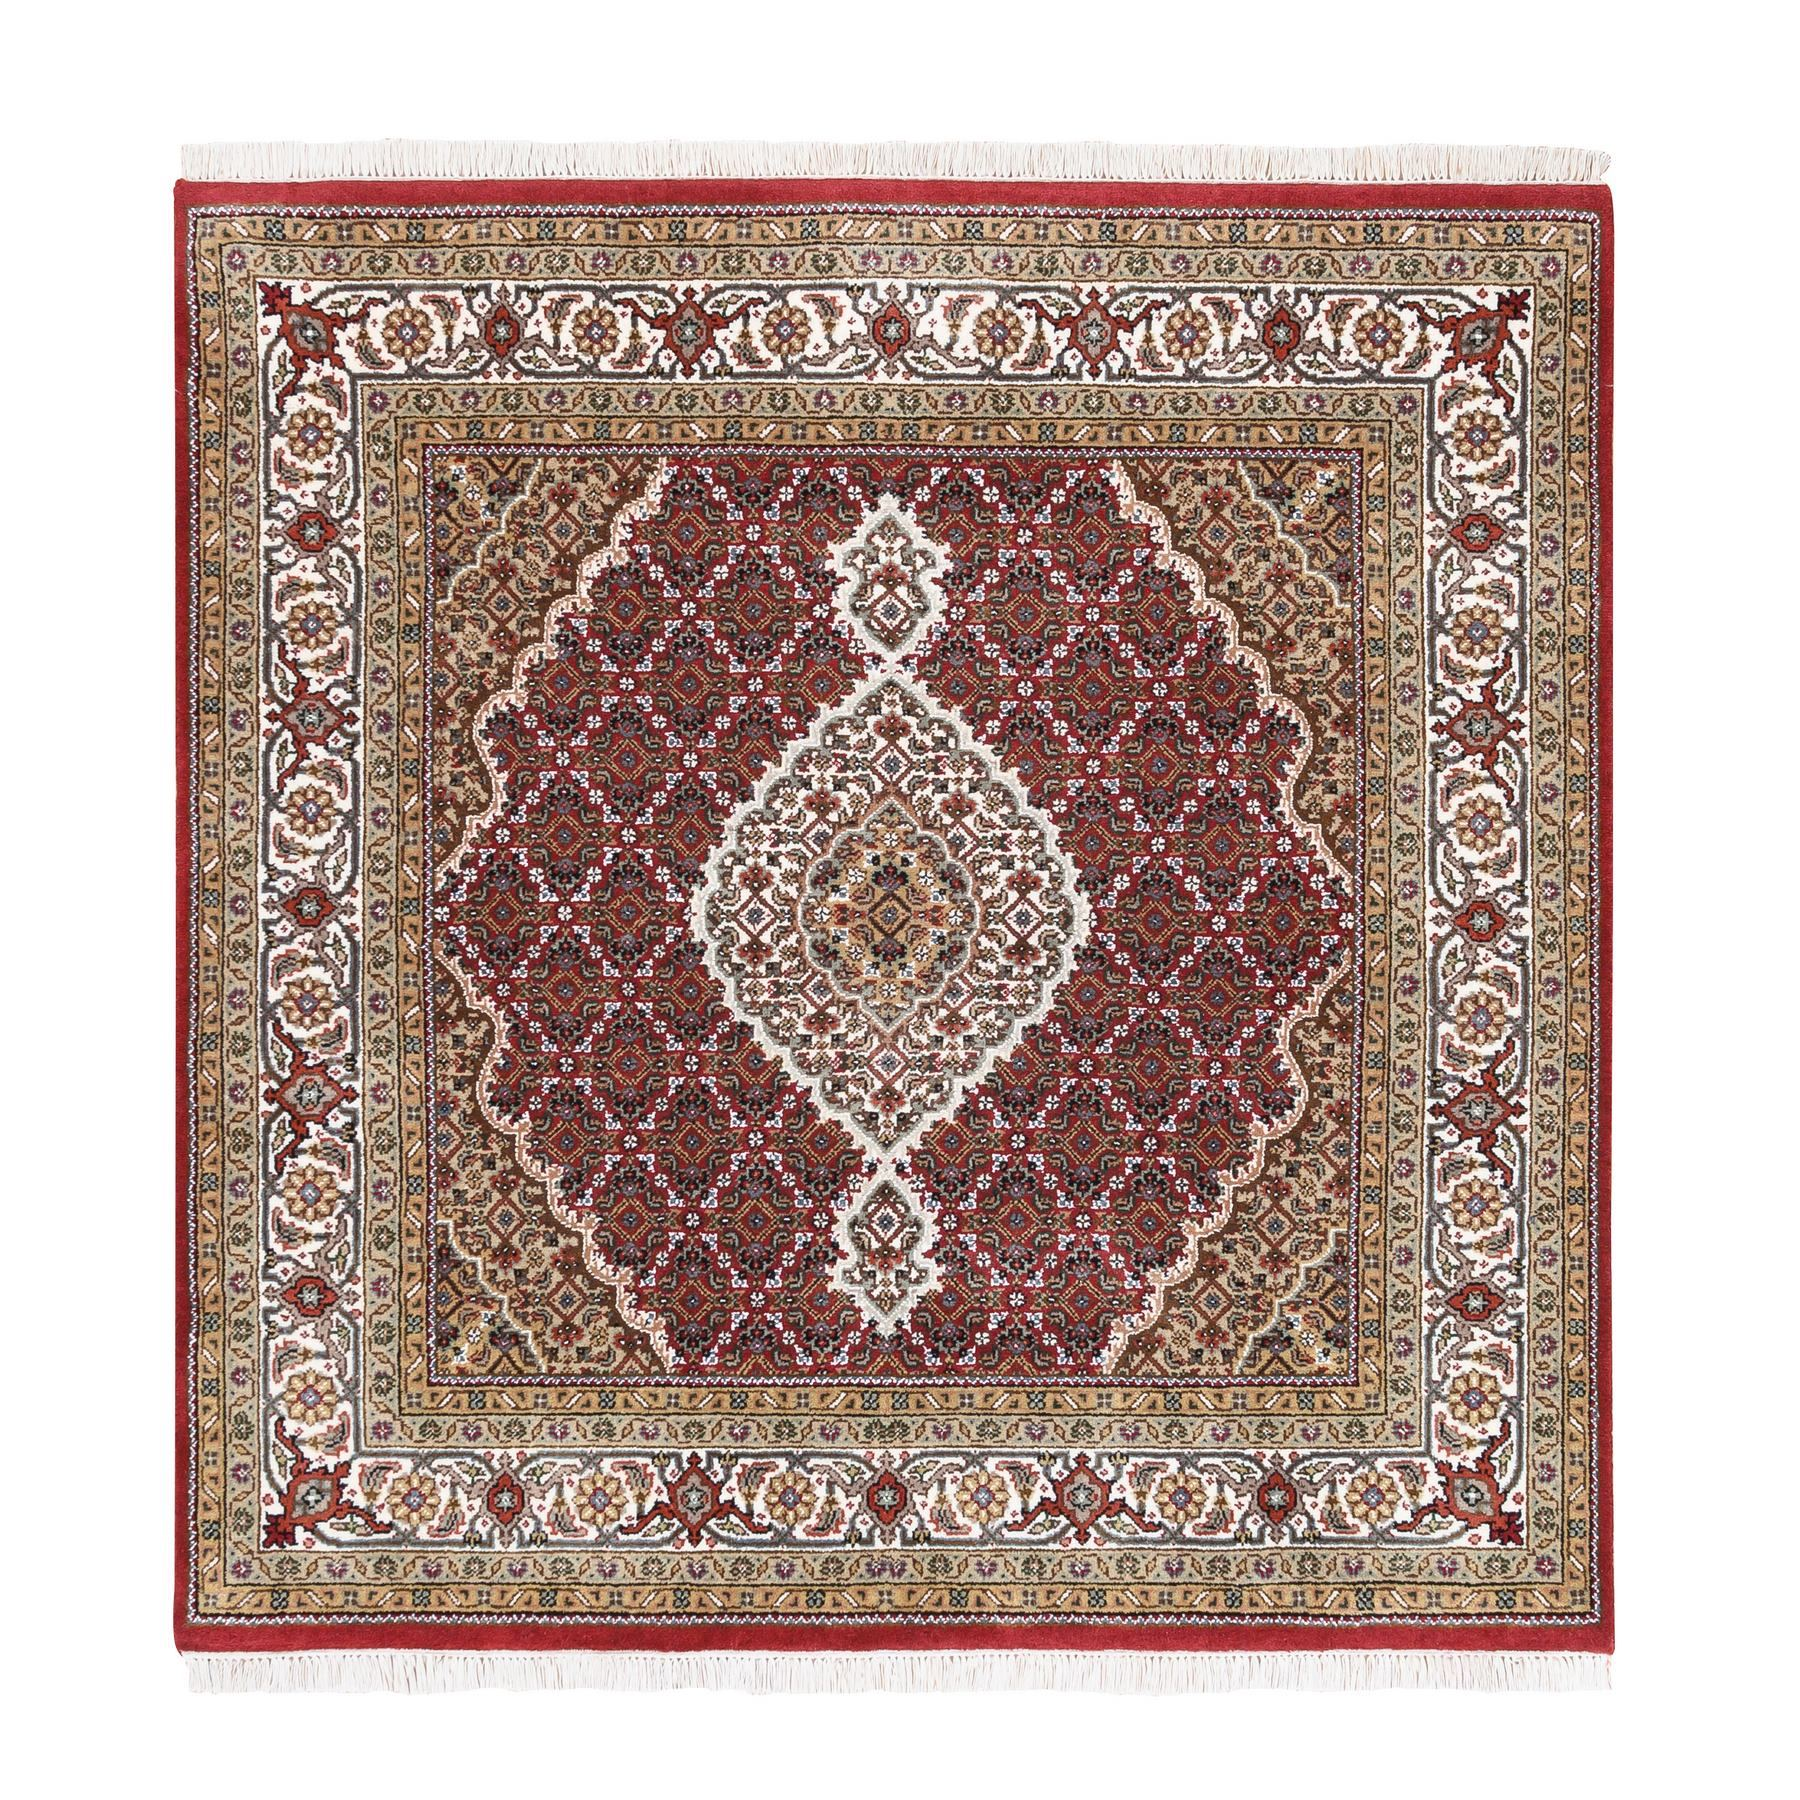 Pirniakan Collection Hand Knotted Red Rug No: 1125106